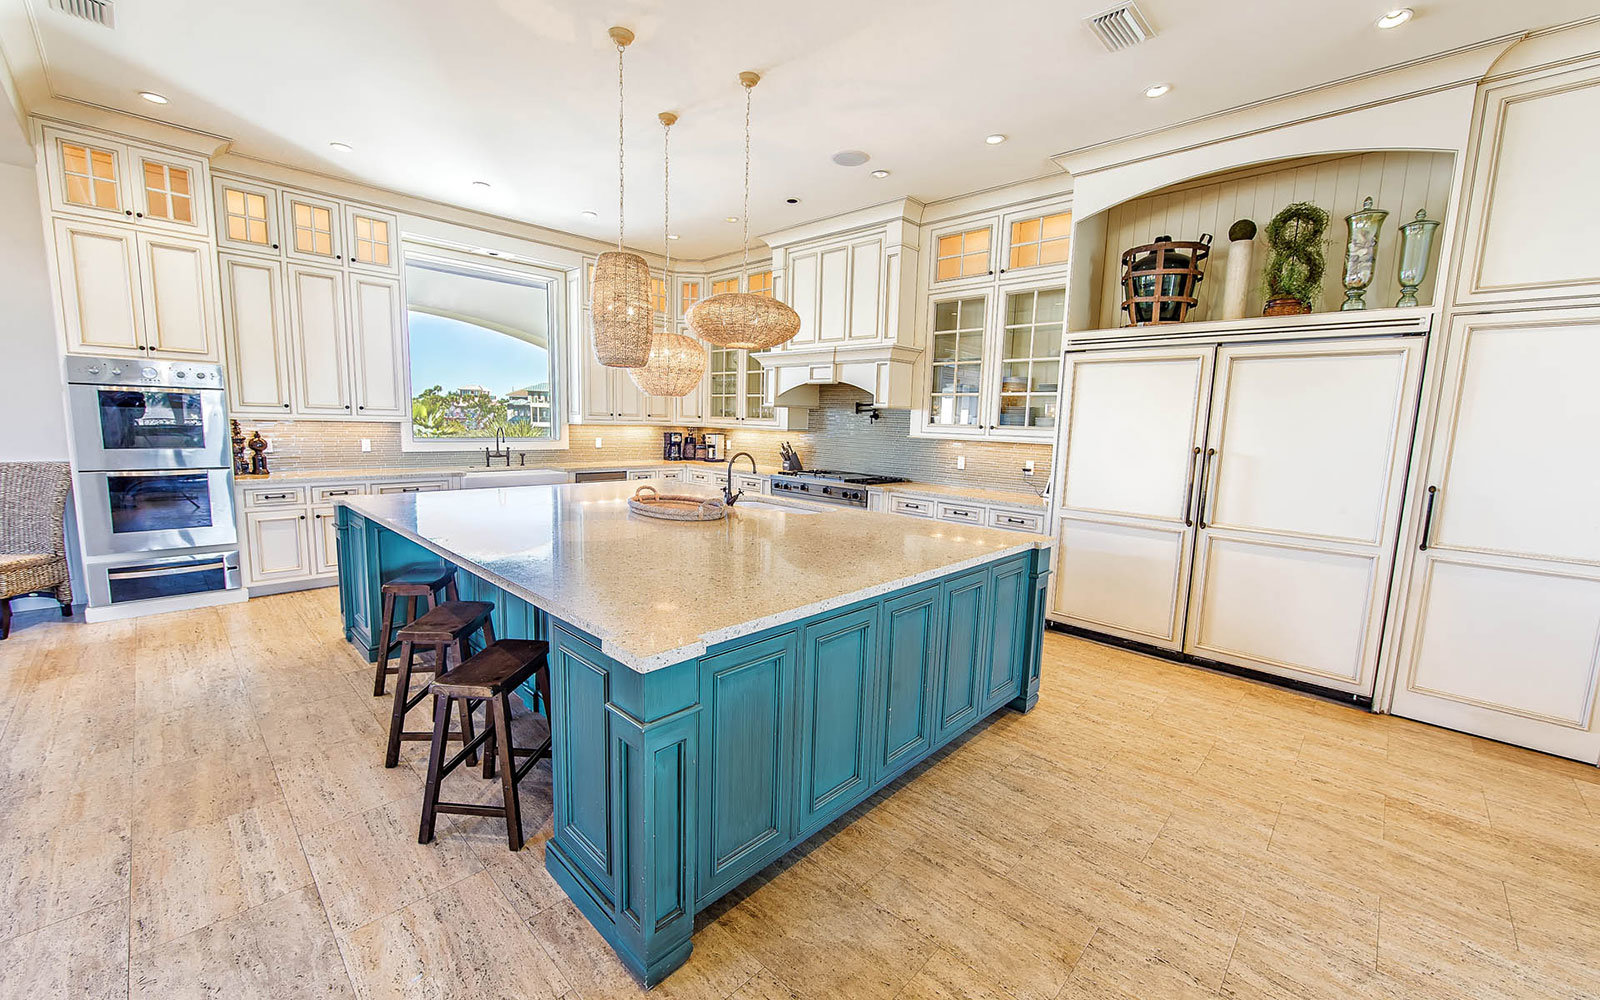 Rent Your Dream Kitchen for a Week